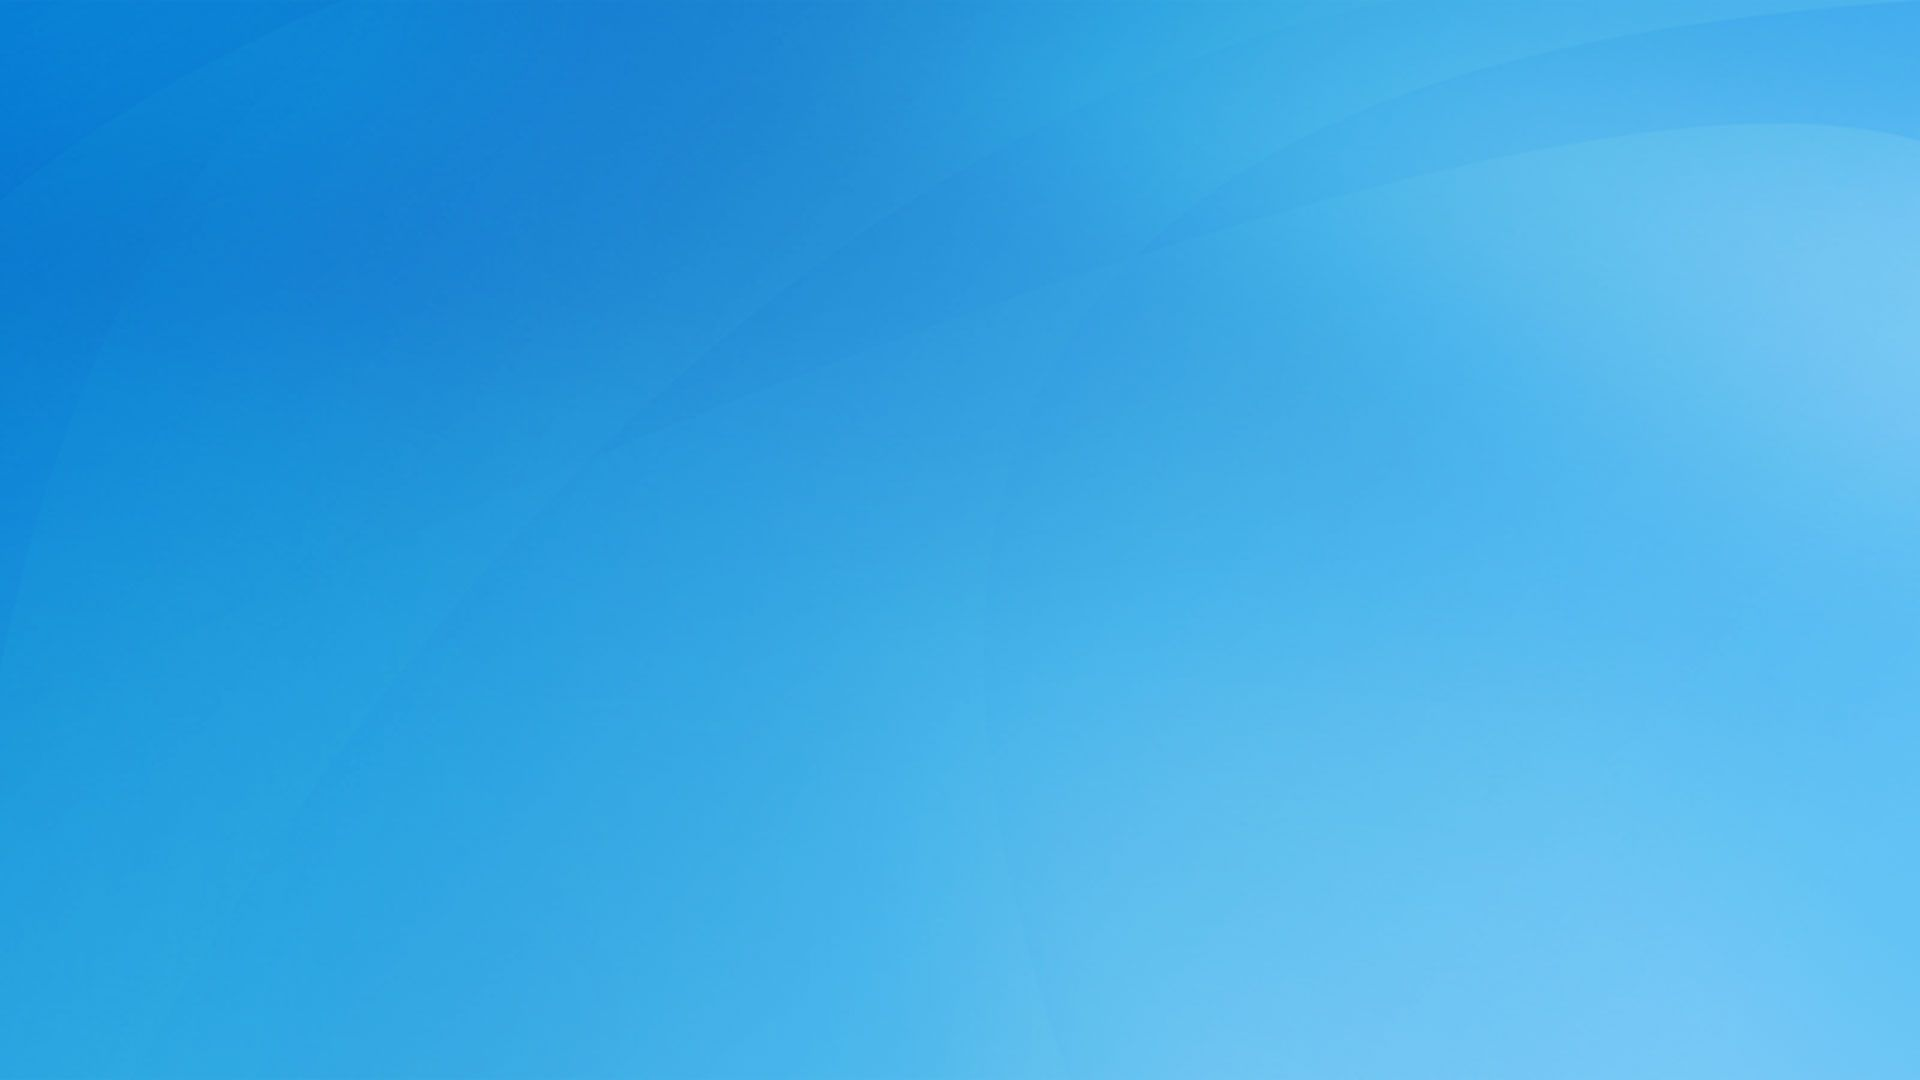 Plain Blue Wallpaper HD